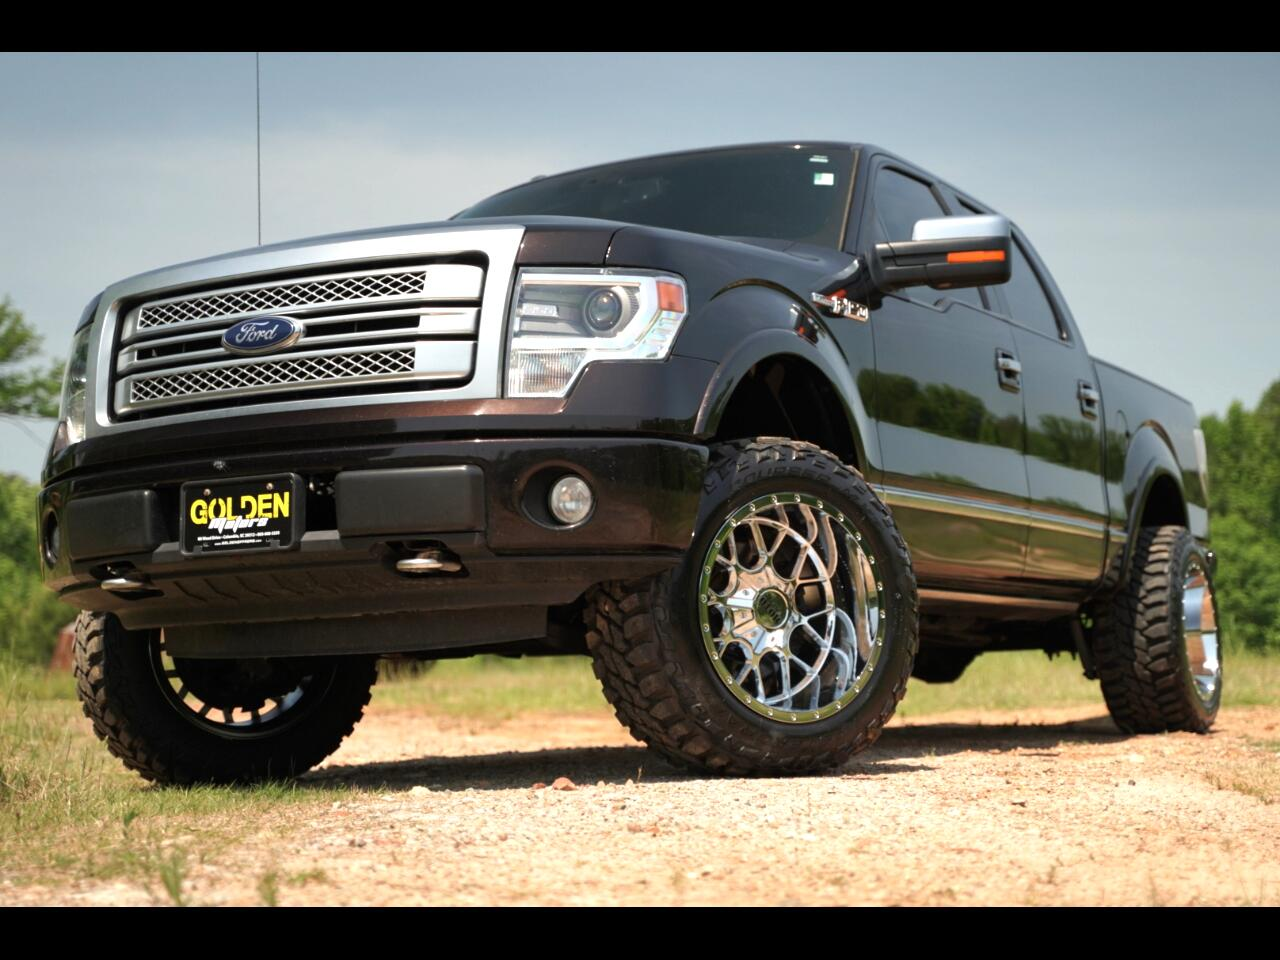 2014 Ford F-150 4wd Platium Super Crew Loaded Lifted 5.0! Hurry!